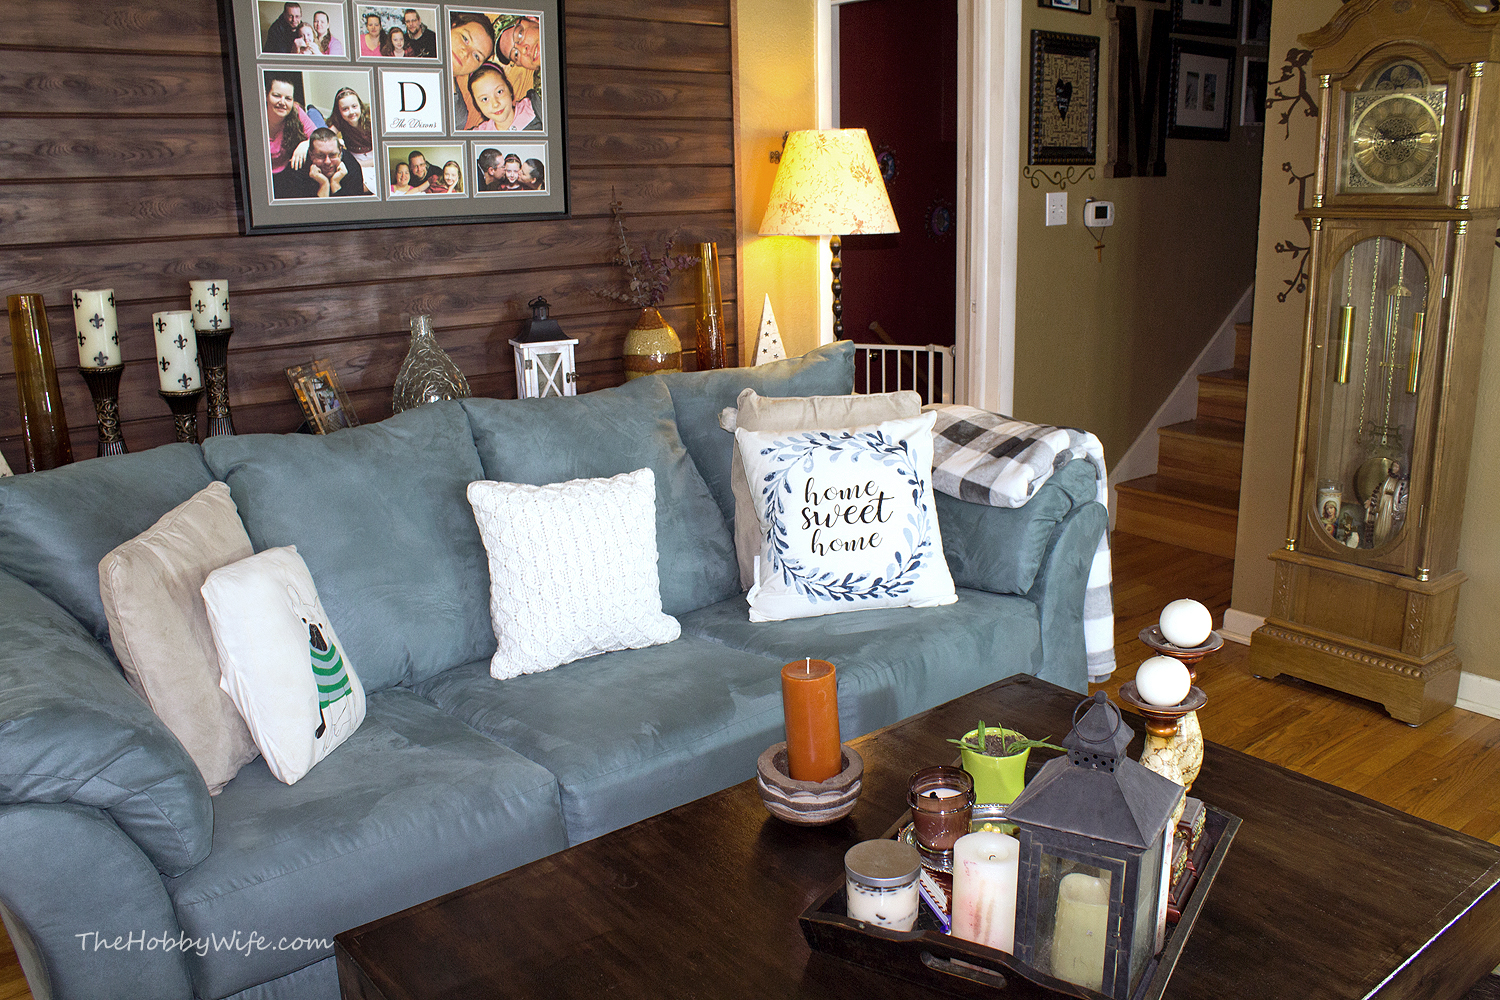 Astounding Diy Console Table Archives The Hobby Wife Machost Co Dining Chair Design Ideas Machostcouk